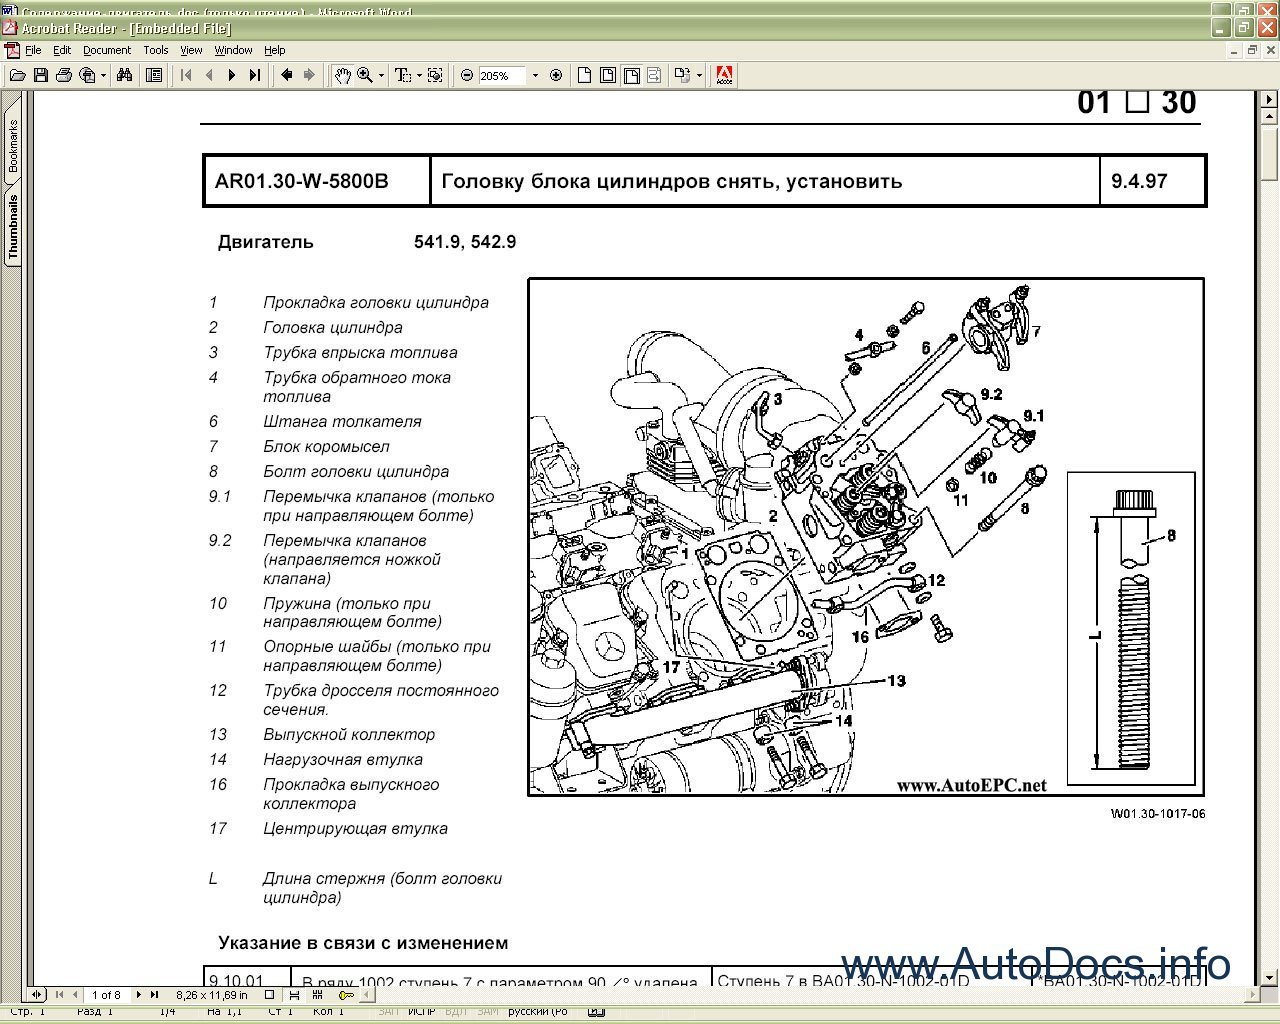 Mercedes Benz Actros Service Documentation repair manual